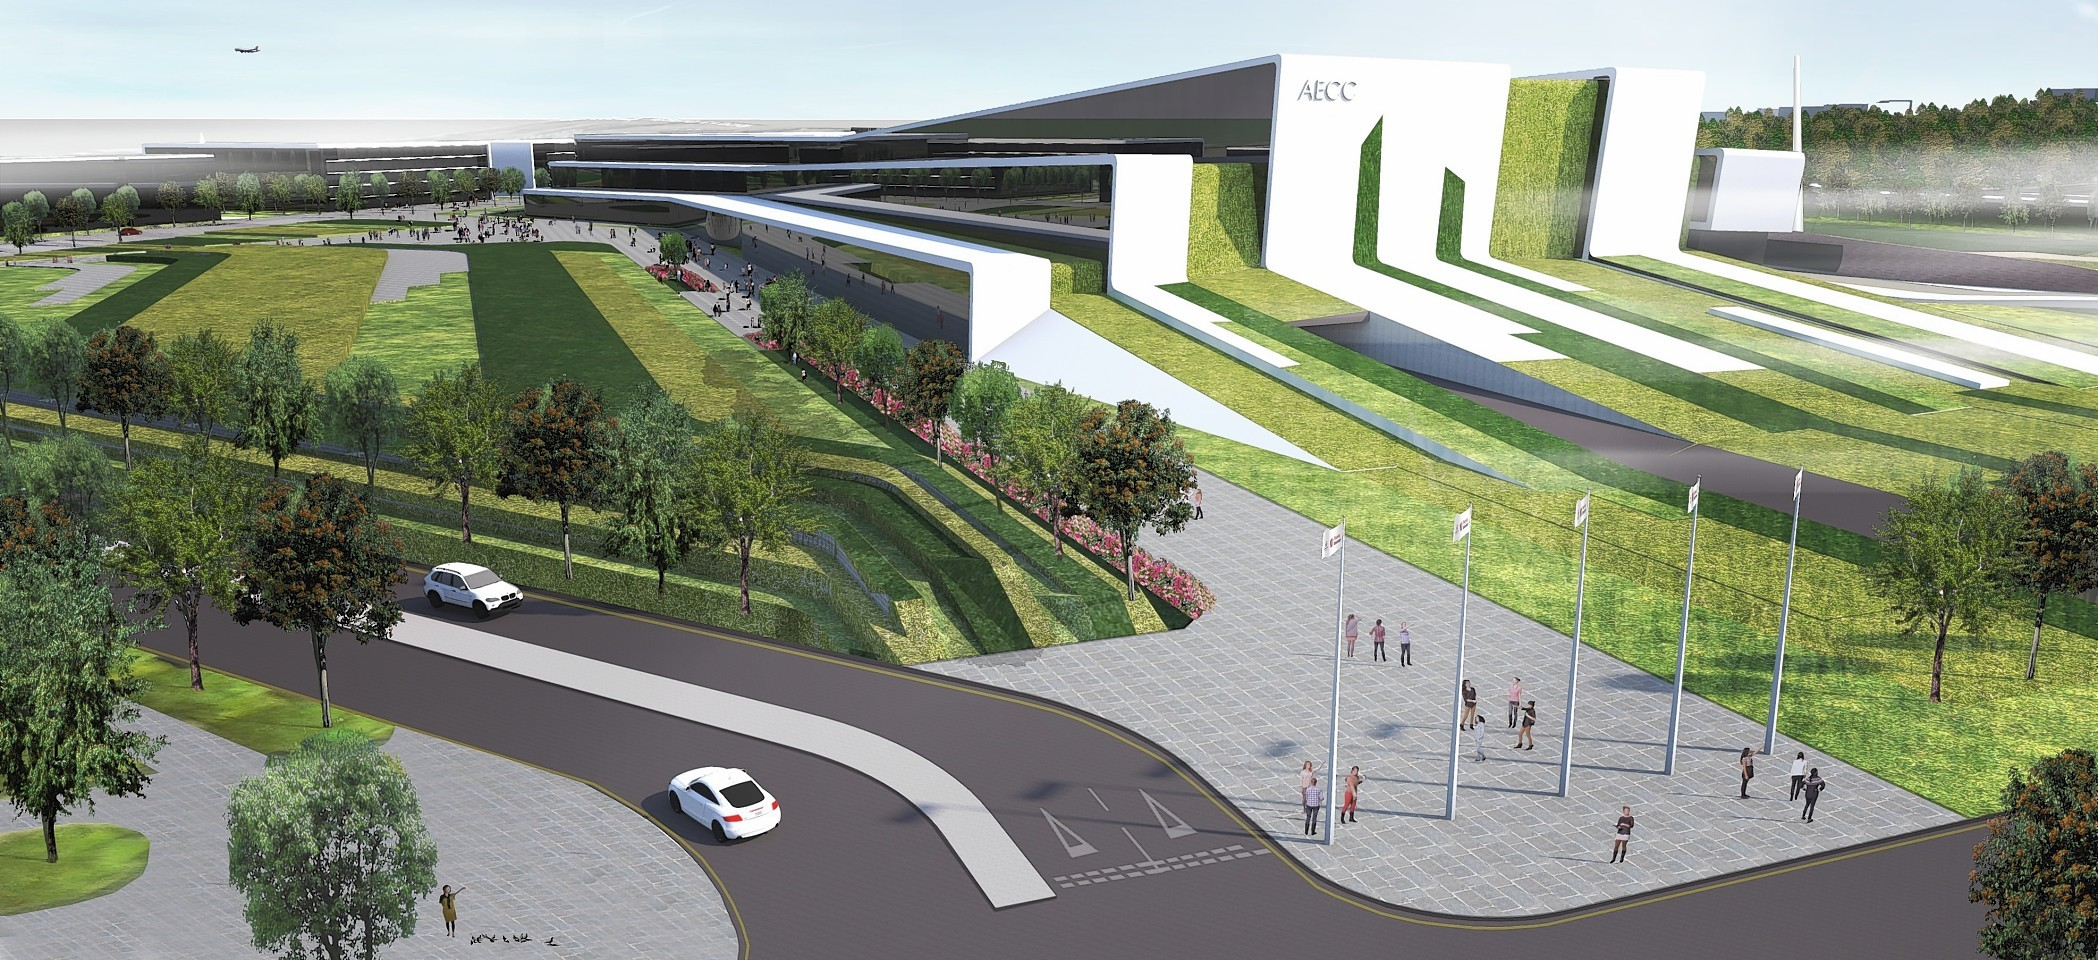 New artist impressions for the AECC